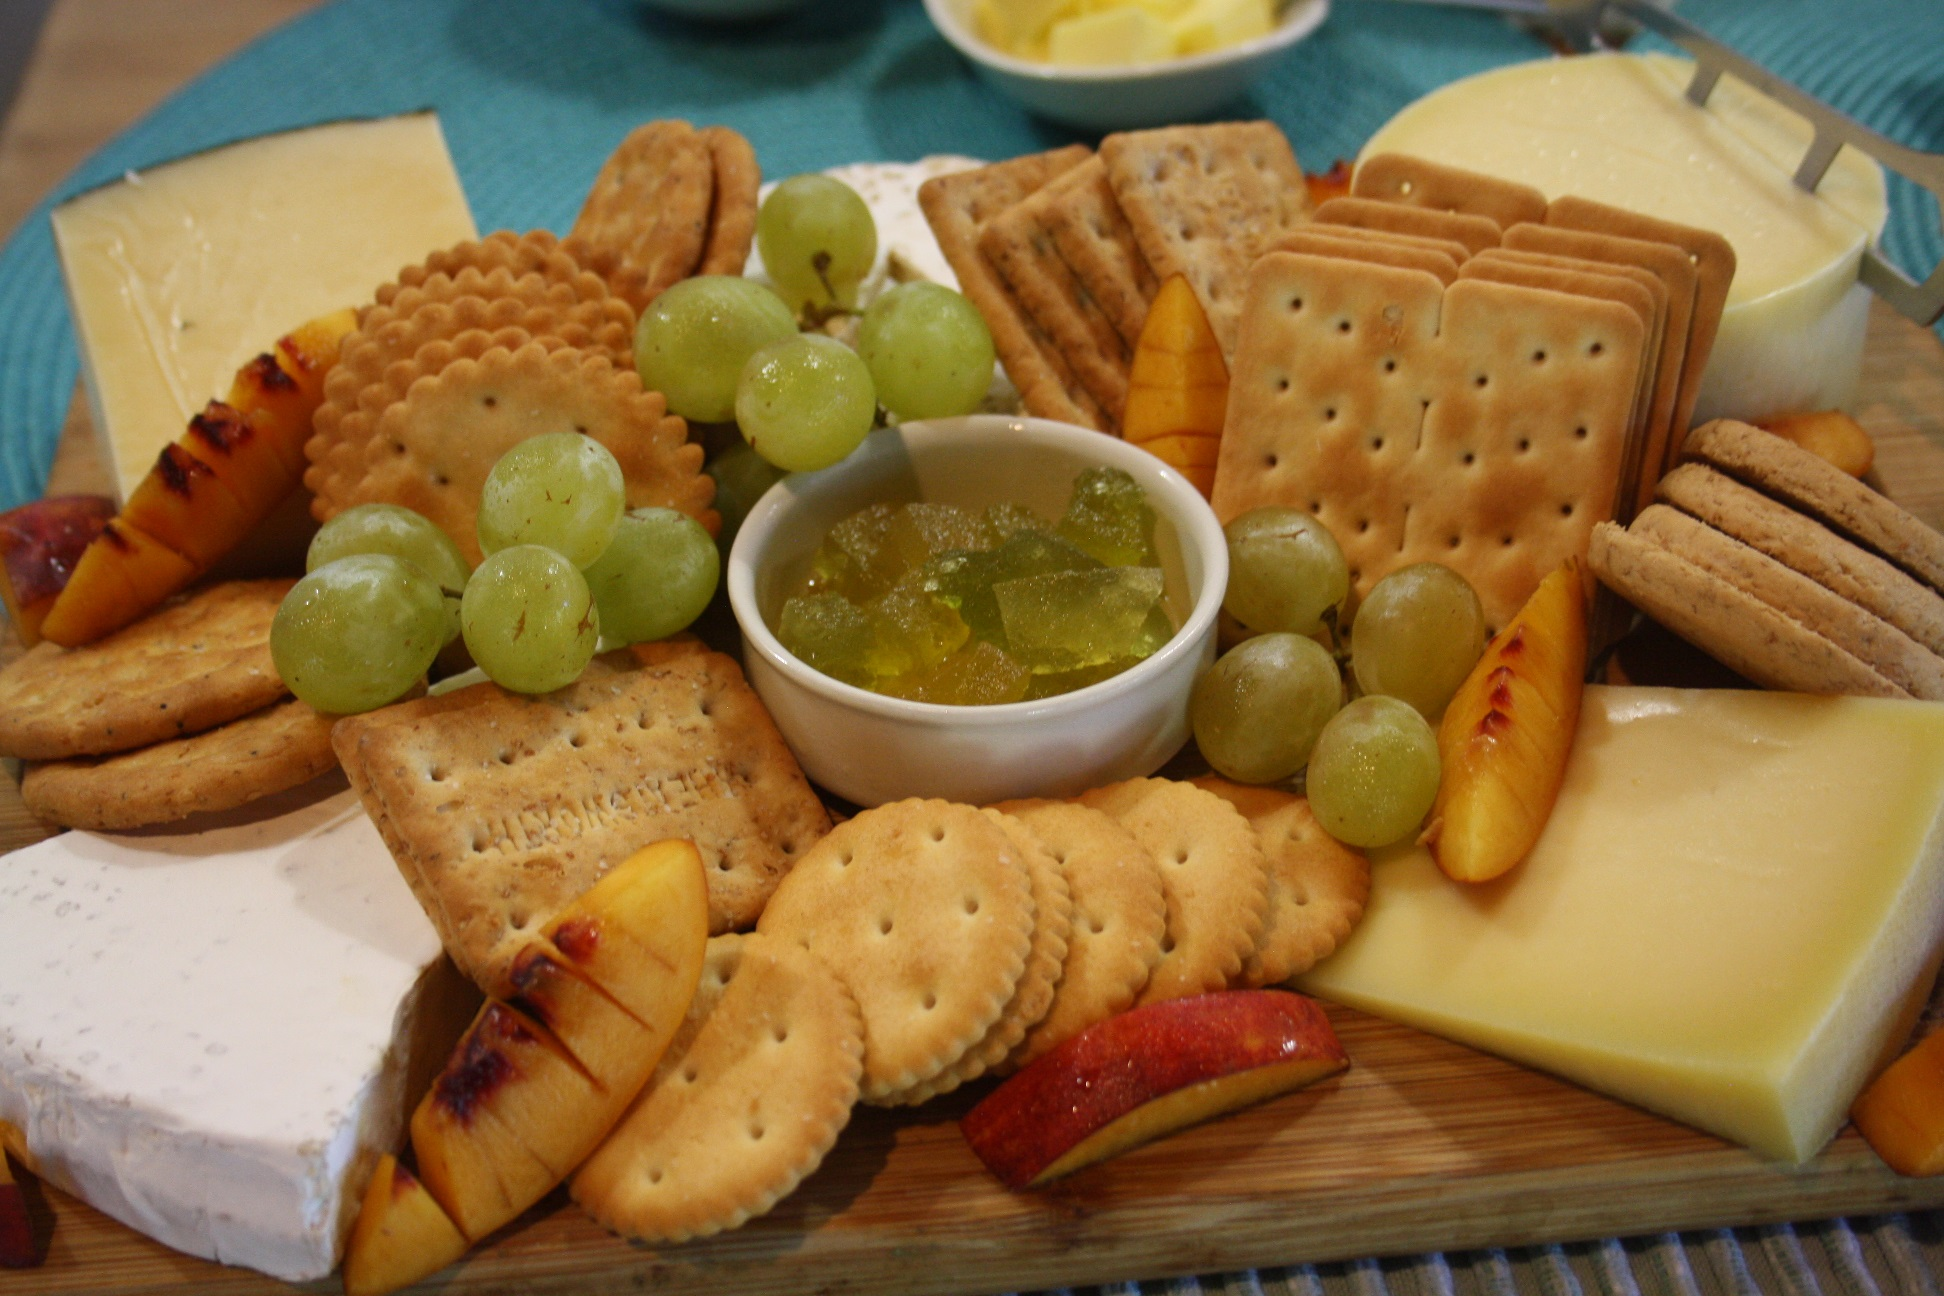 Delicious local cheeses and preserves